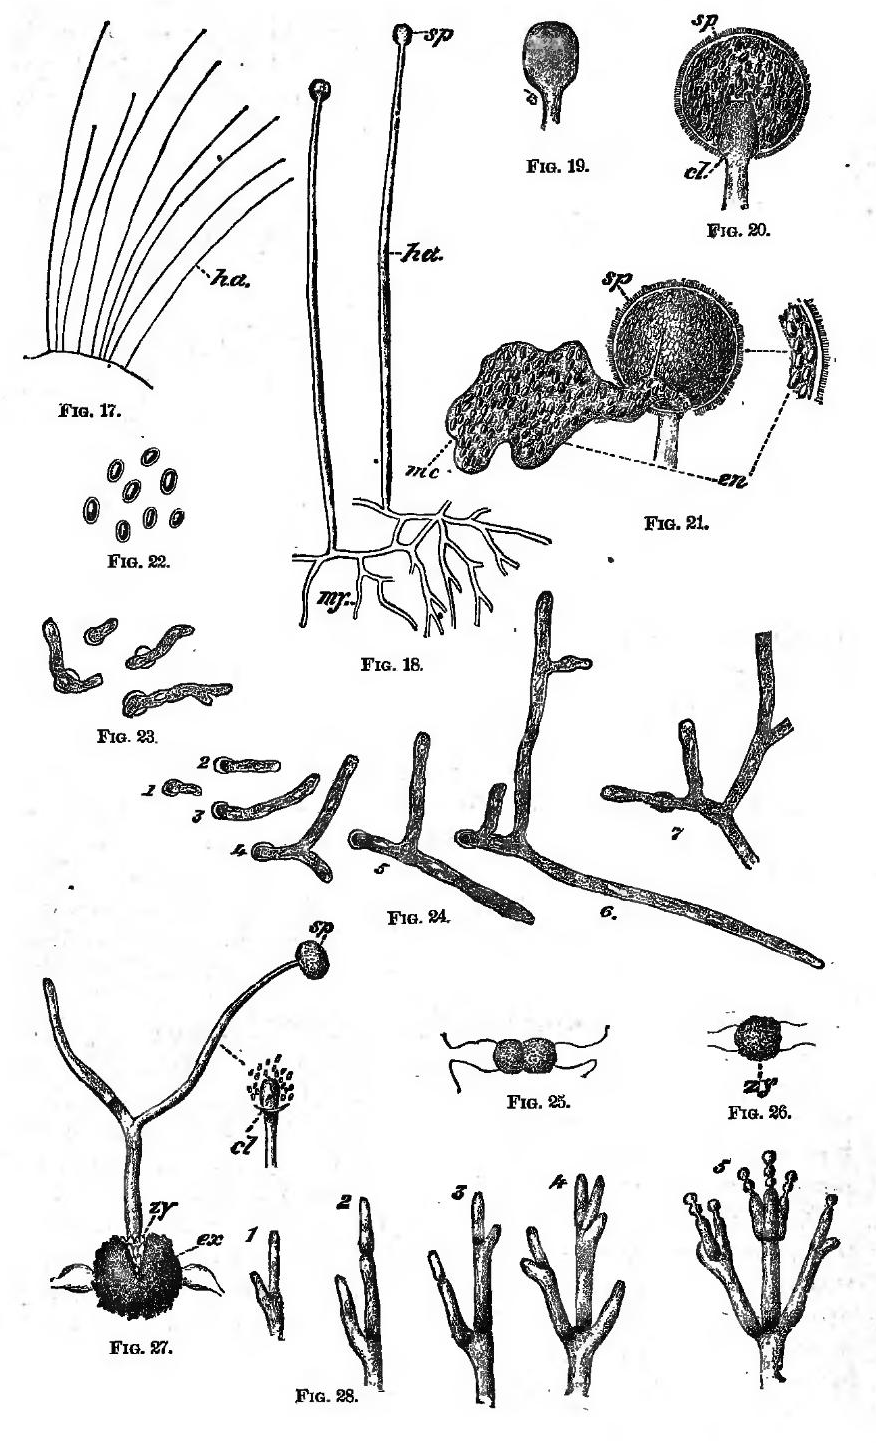 File:Observations of Mucor and Penicillium (A Textbook of